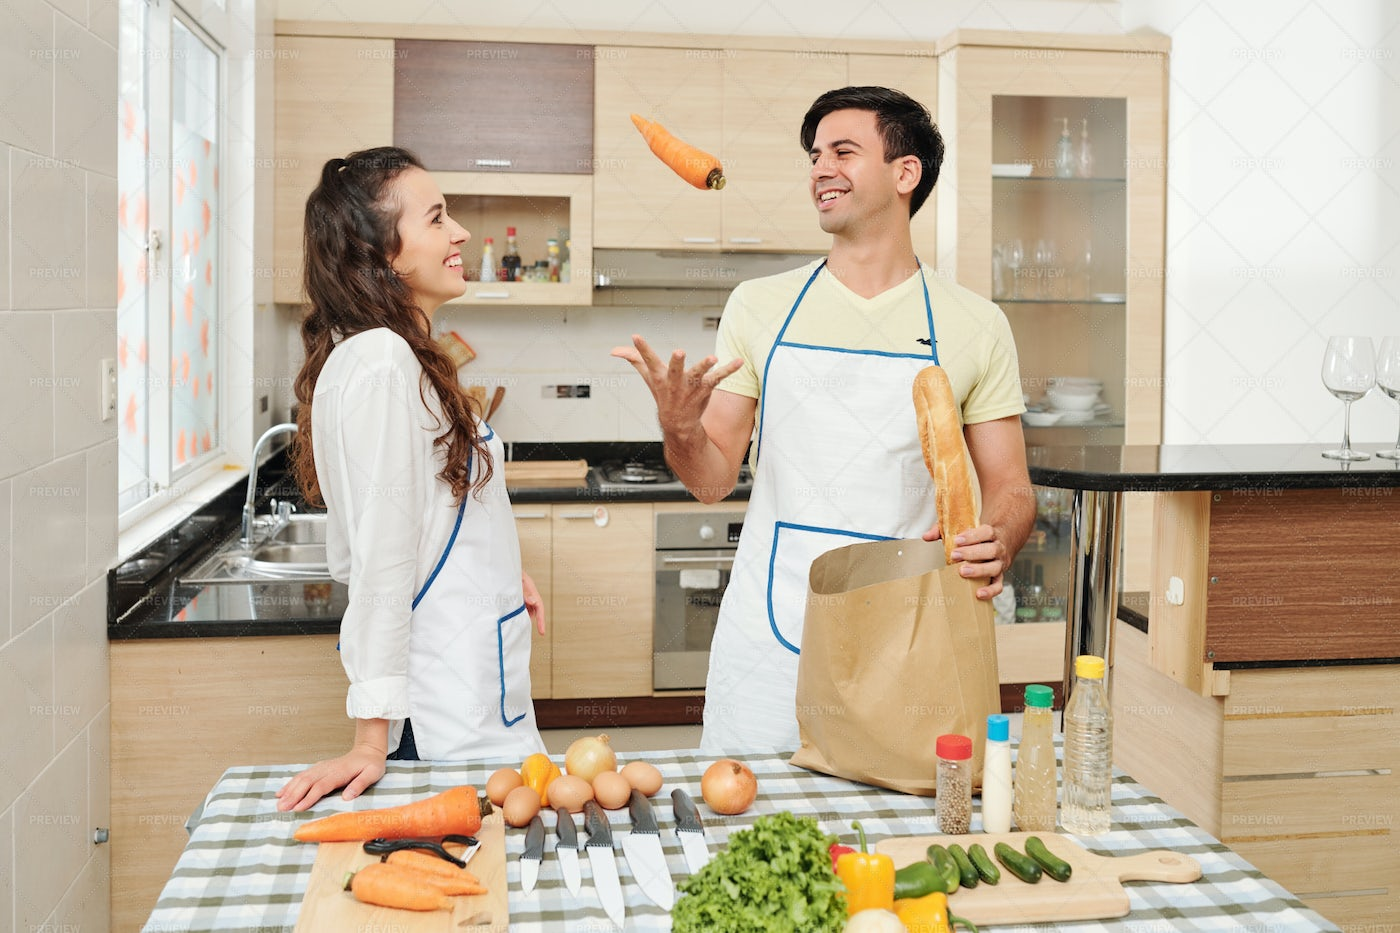 Make Taking Products Out Of Grocery Bag: Stock Photos